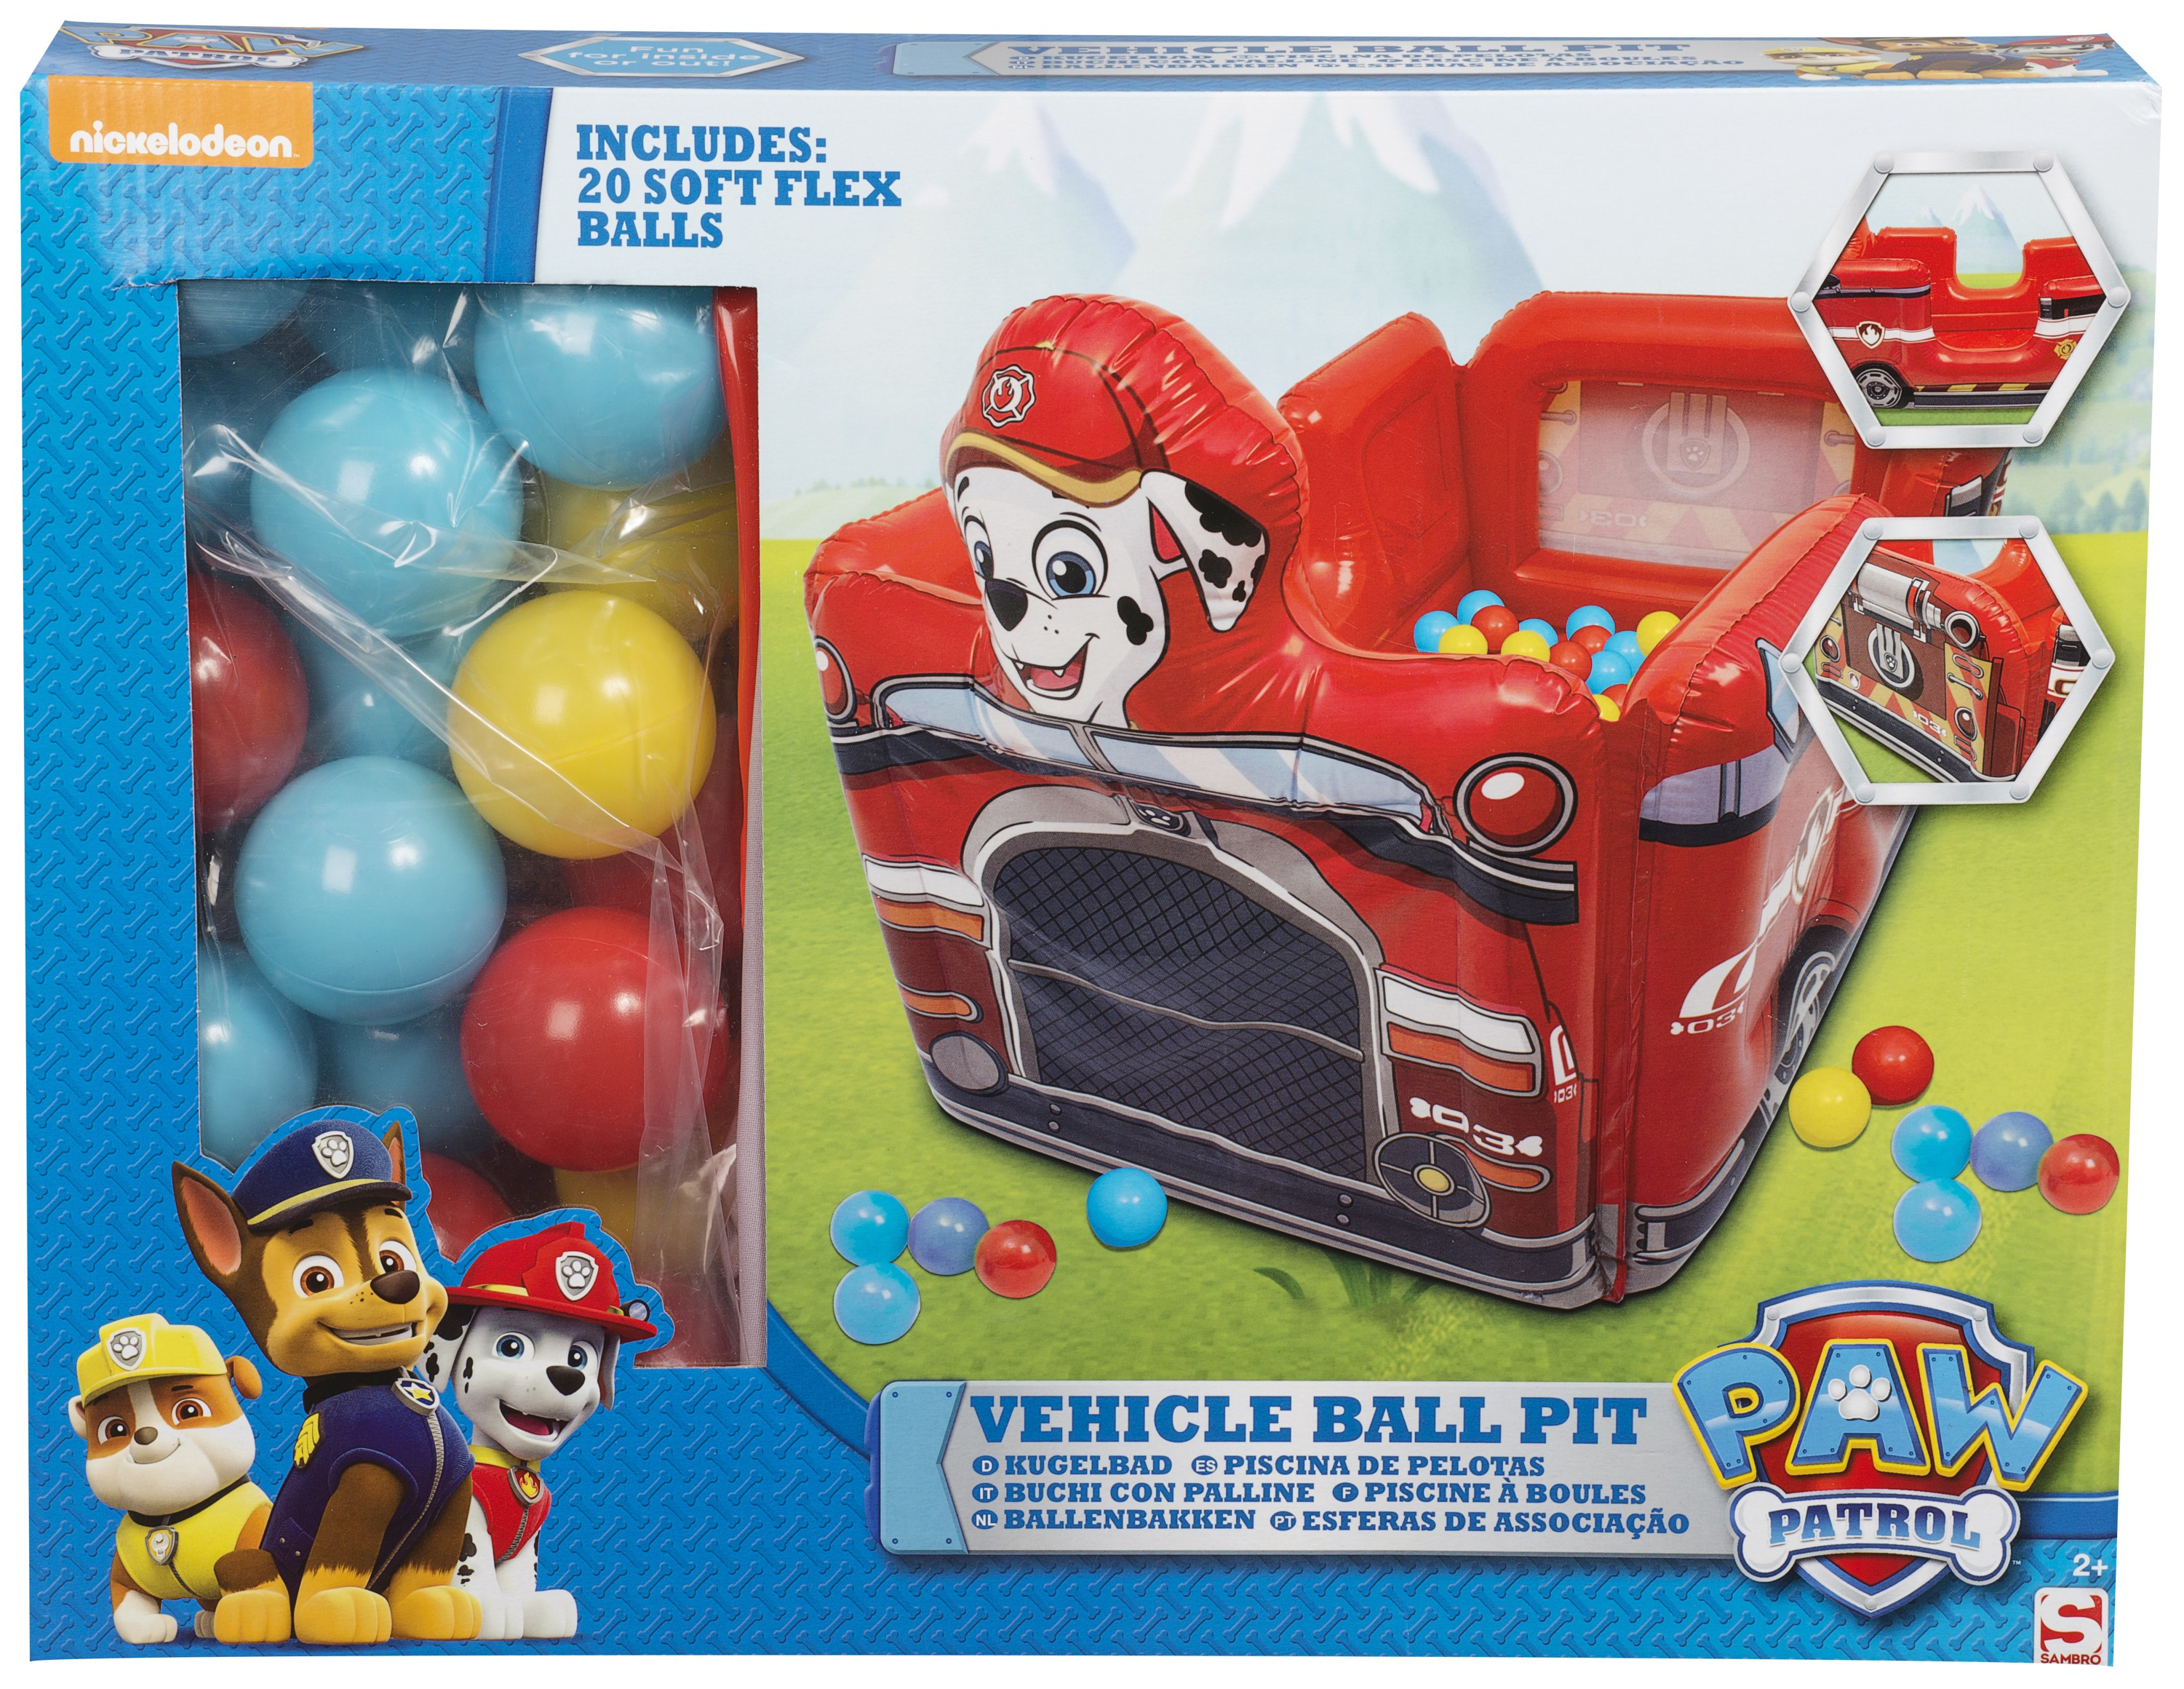 PAW PATROL INFLATABLE BALL PIT FUN HOUSE BOUNCY CASTLE